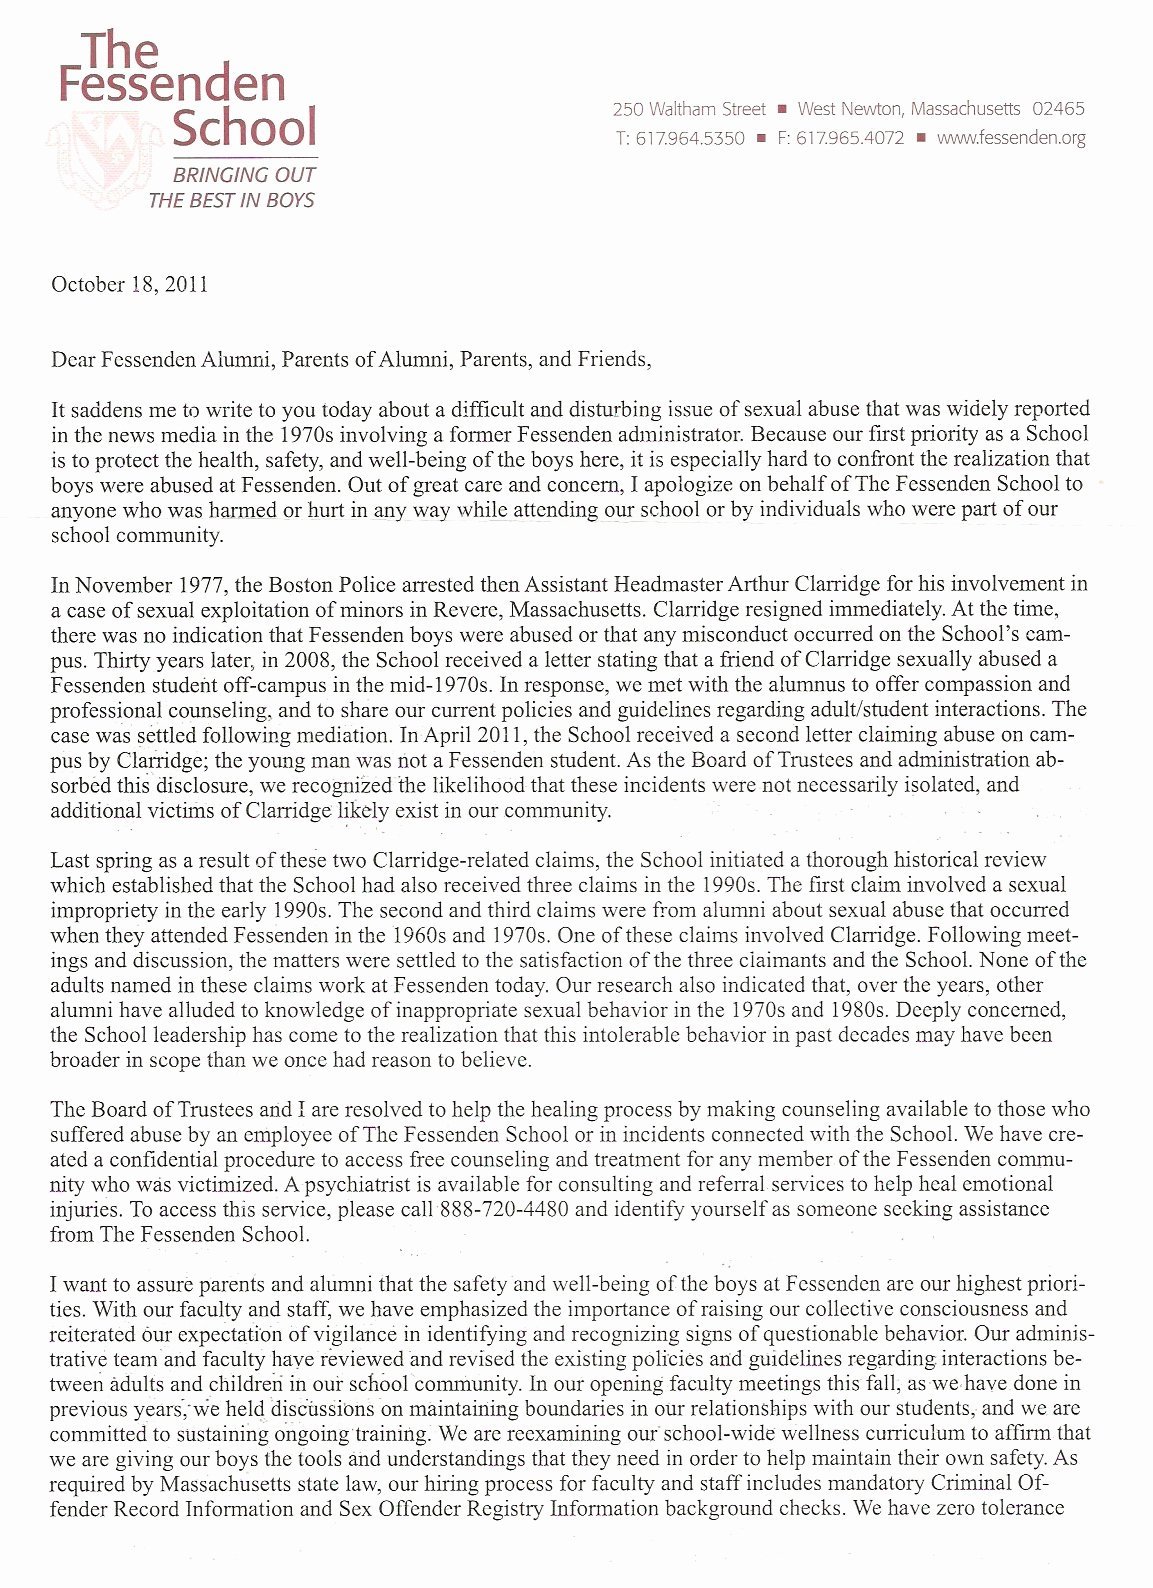 College Recommendation Letter From Alumni Sample Luxury Fessenden School Abuse Scandal It S Worse